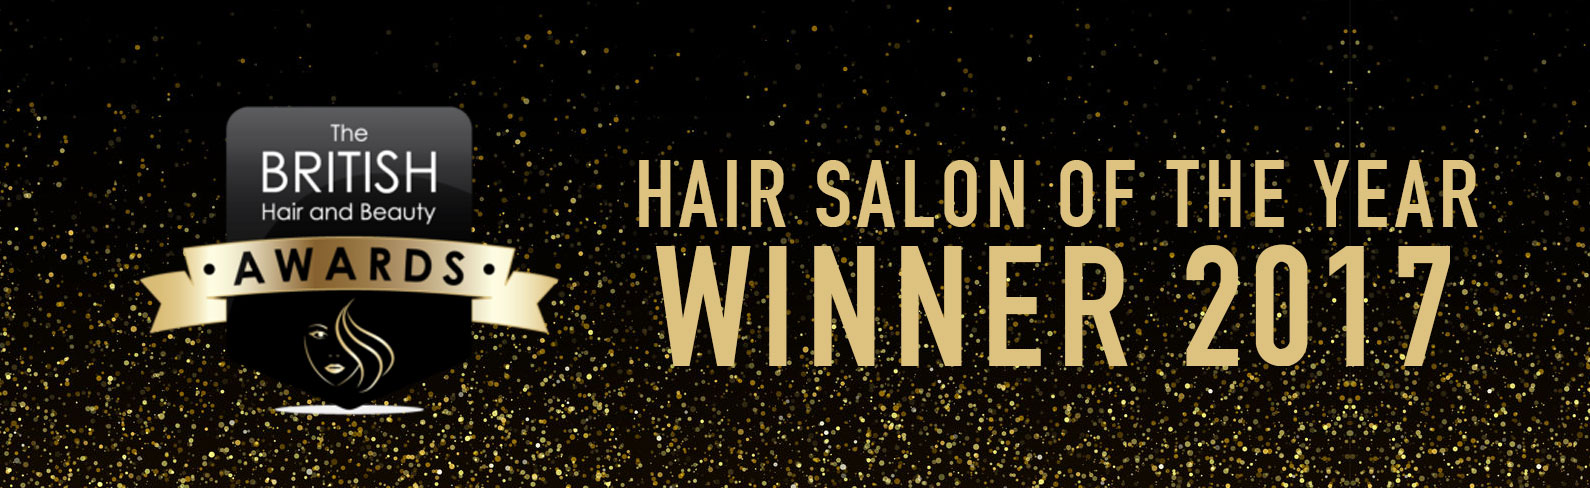 Salon of the Year Award Winners!